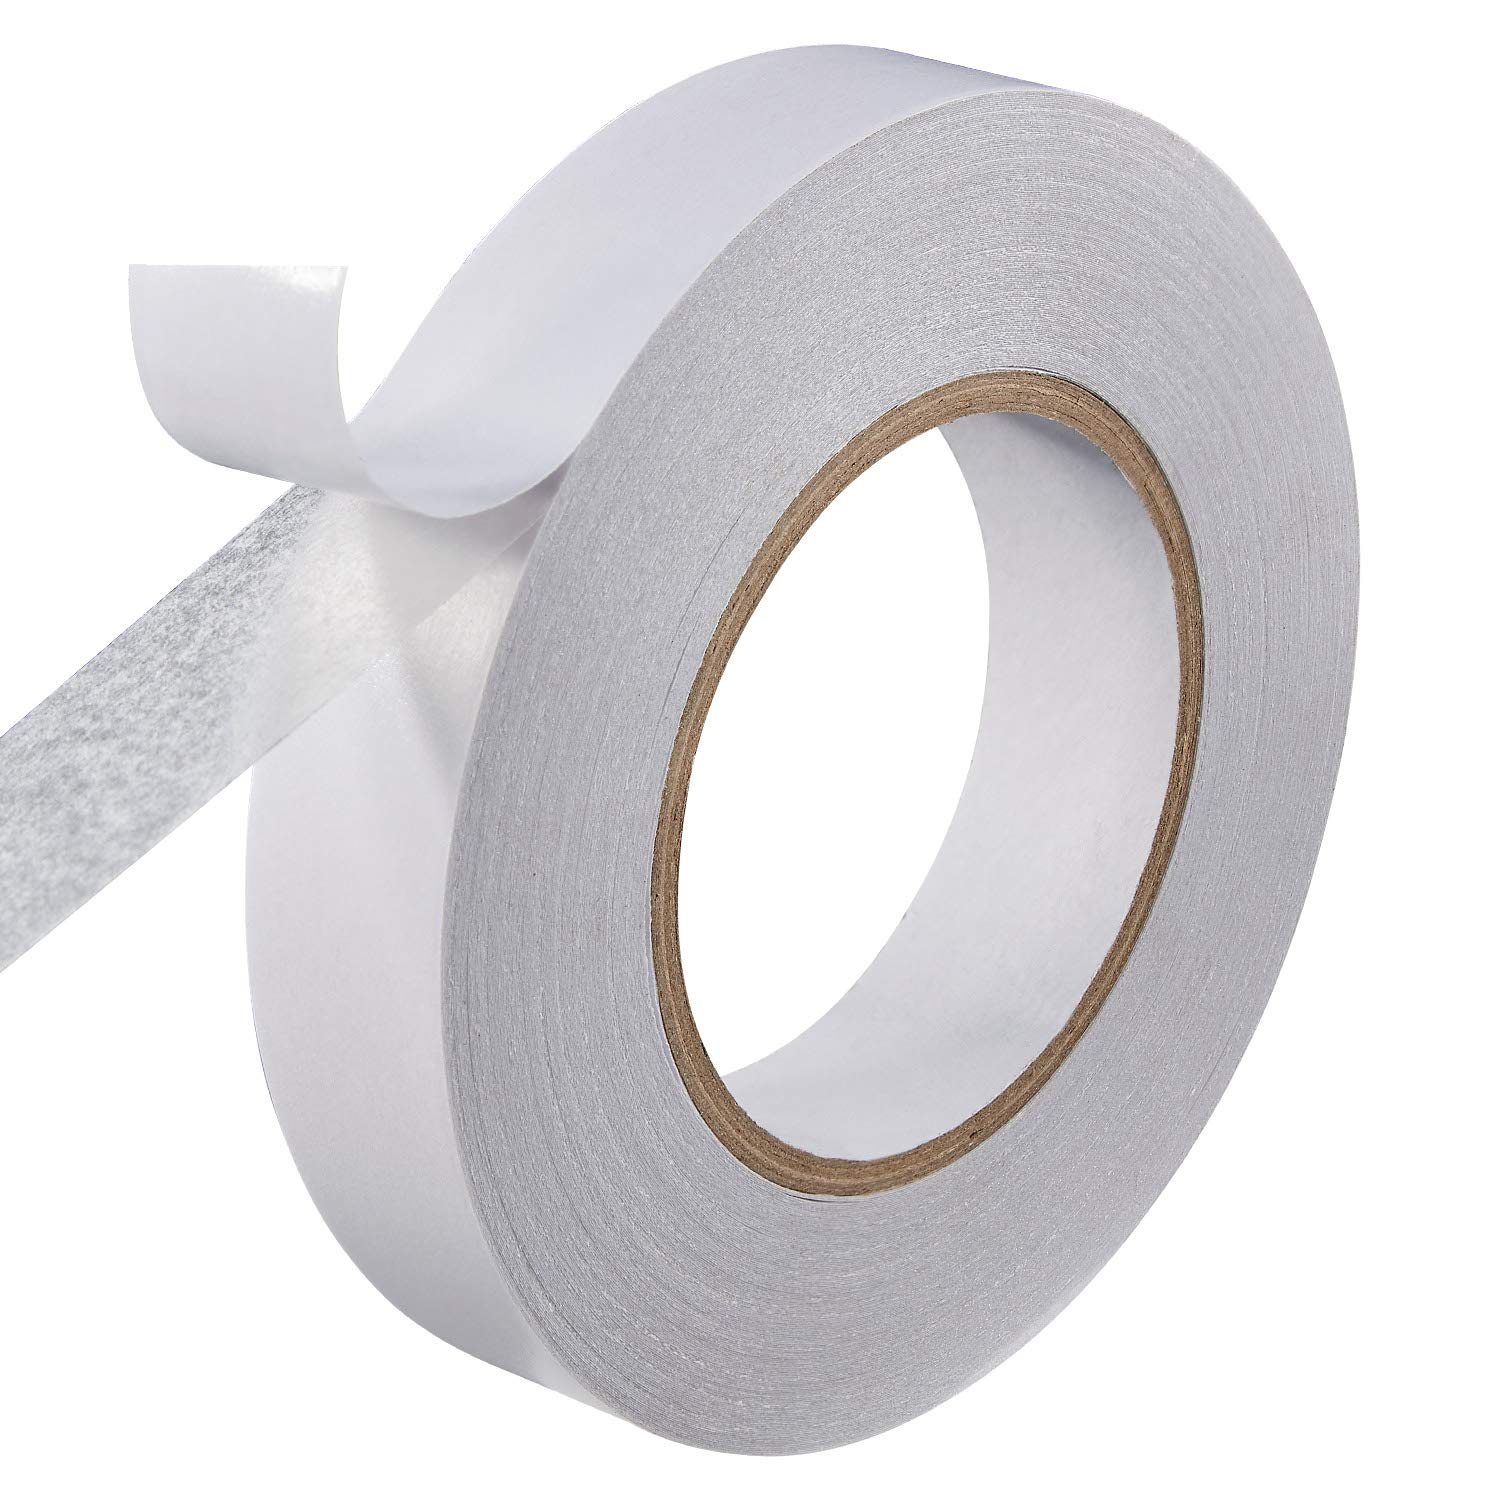 """![CDATA[Best 1"""" Ultra-Thin Permanent Double-Sided Tape for Arts, Crafts, Photography, Scrapbooking, Tear-by-Hand, Paper Backing (1-Inch by 164-Feet/55 Yards)]]"""